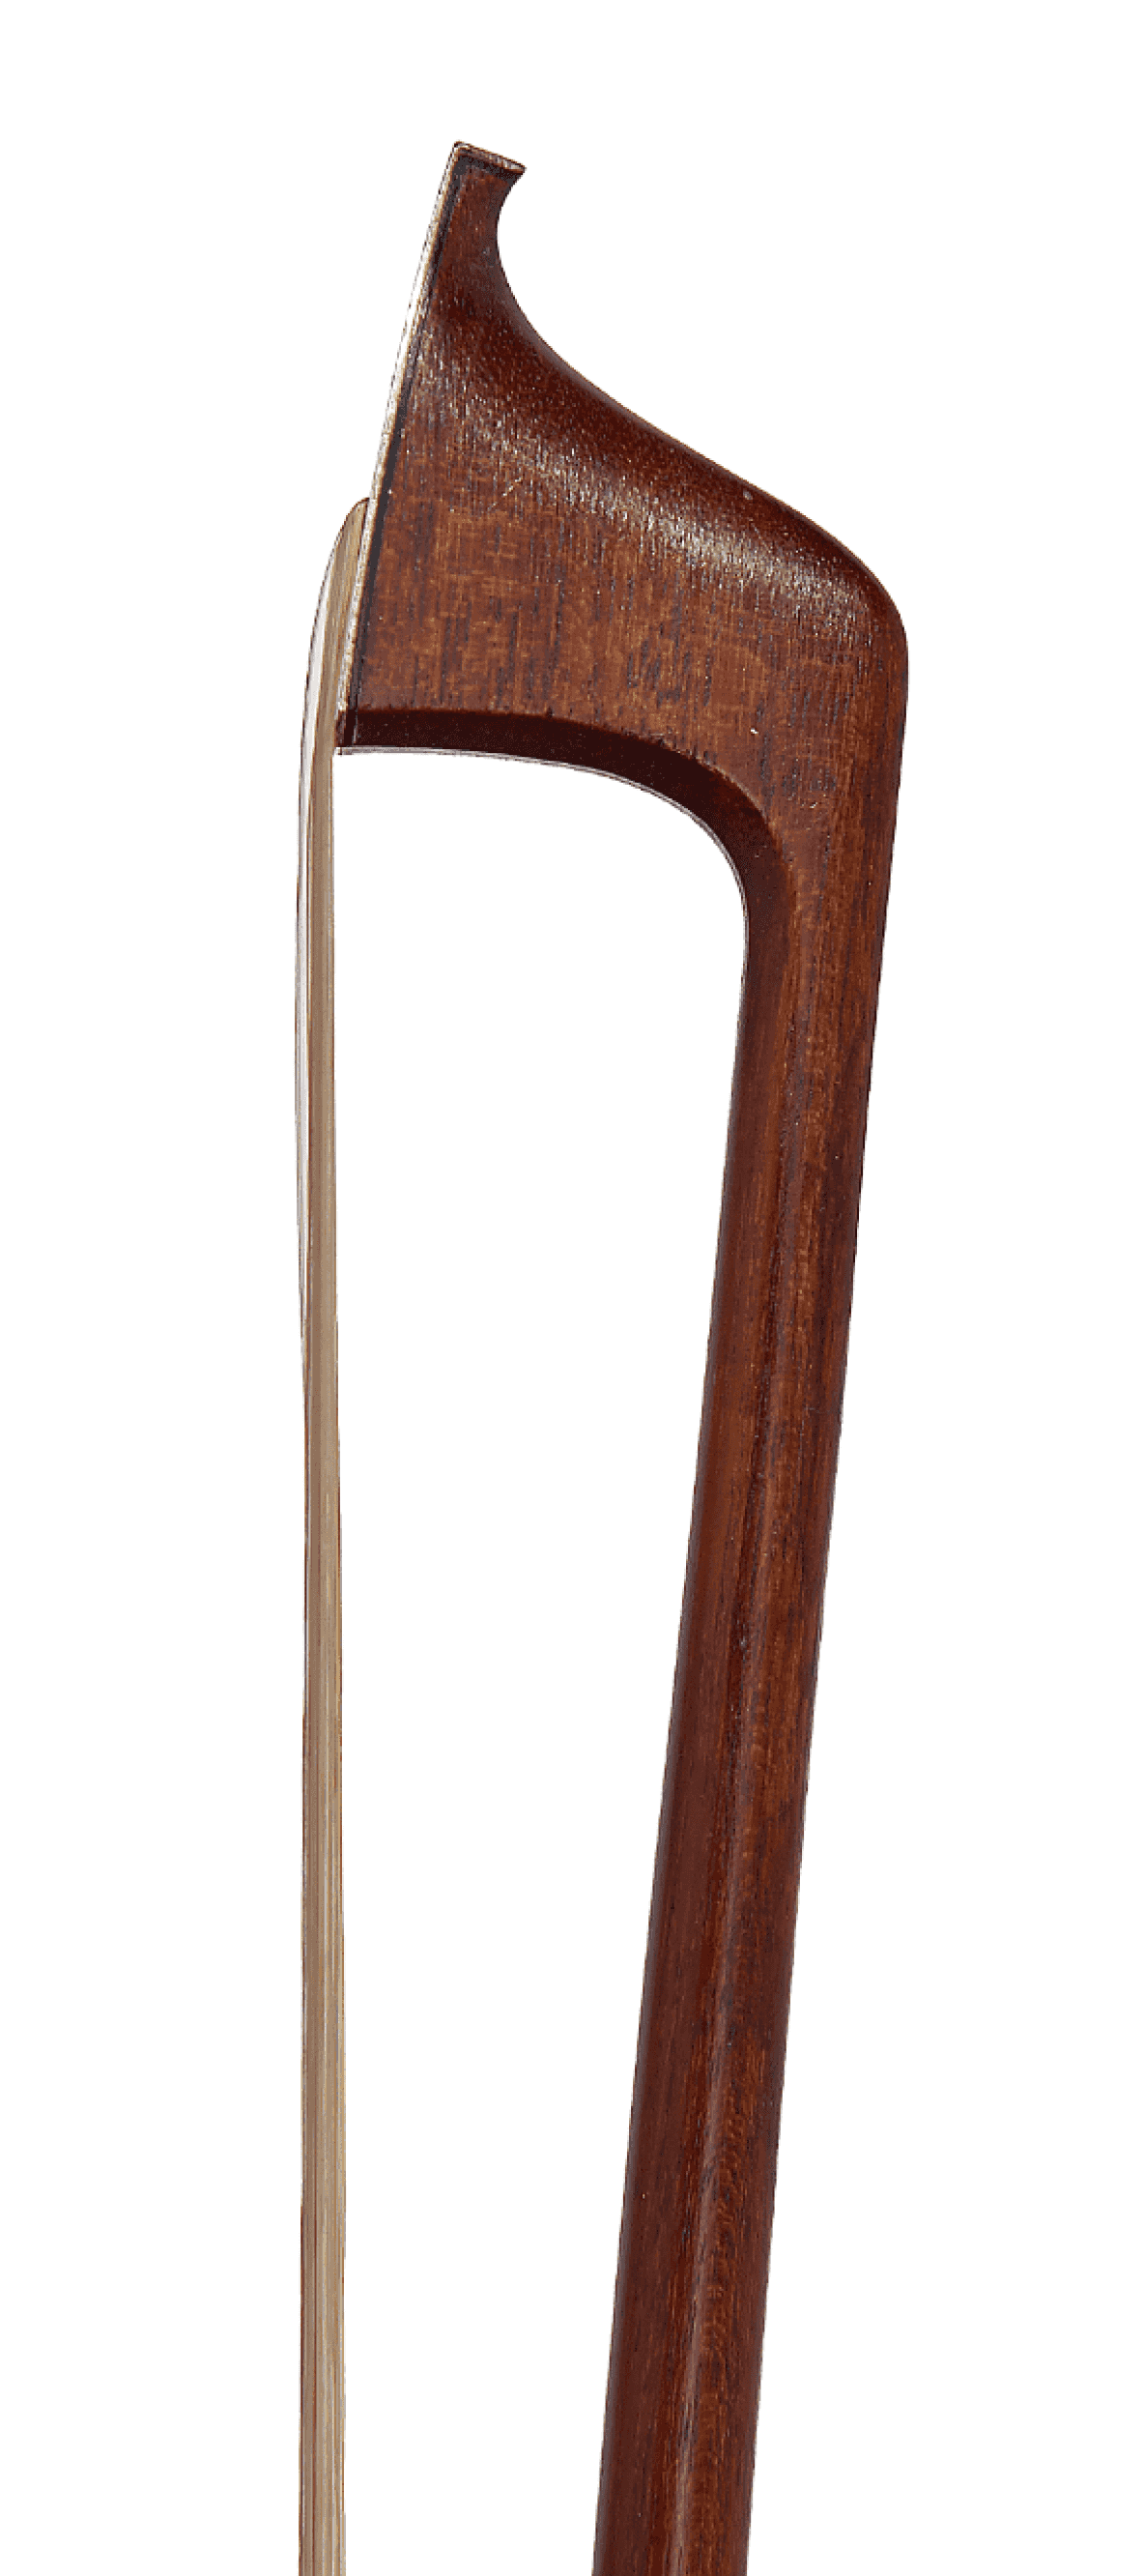 2159-3-allen-cello-bow-b.png